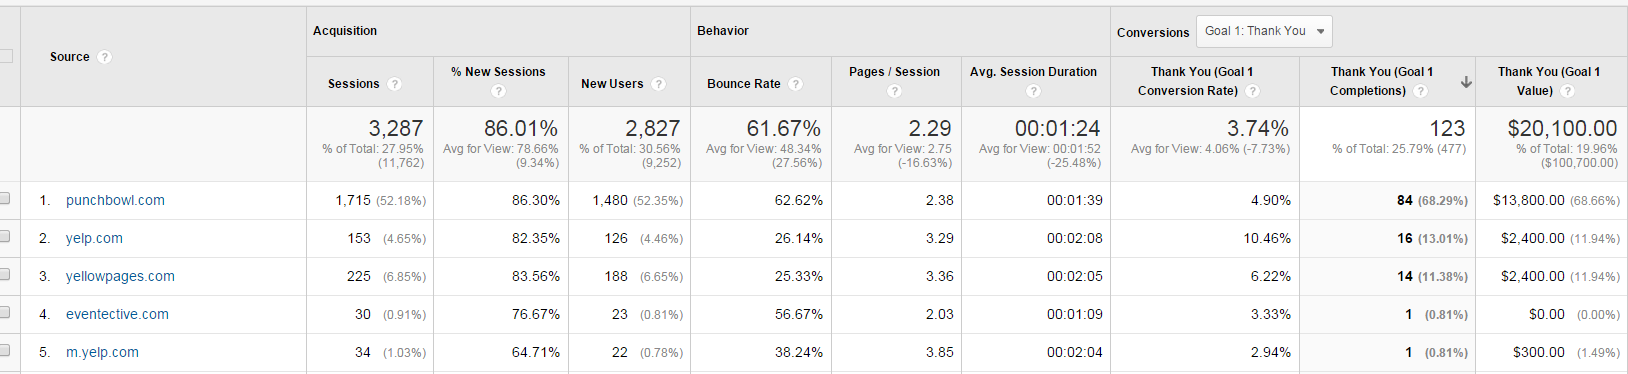 Referral Data with Conversions